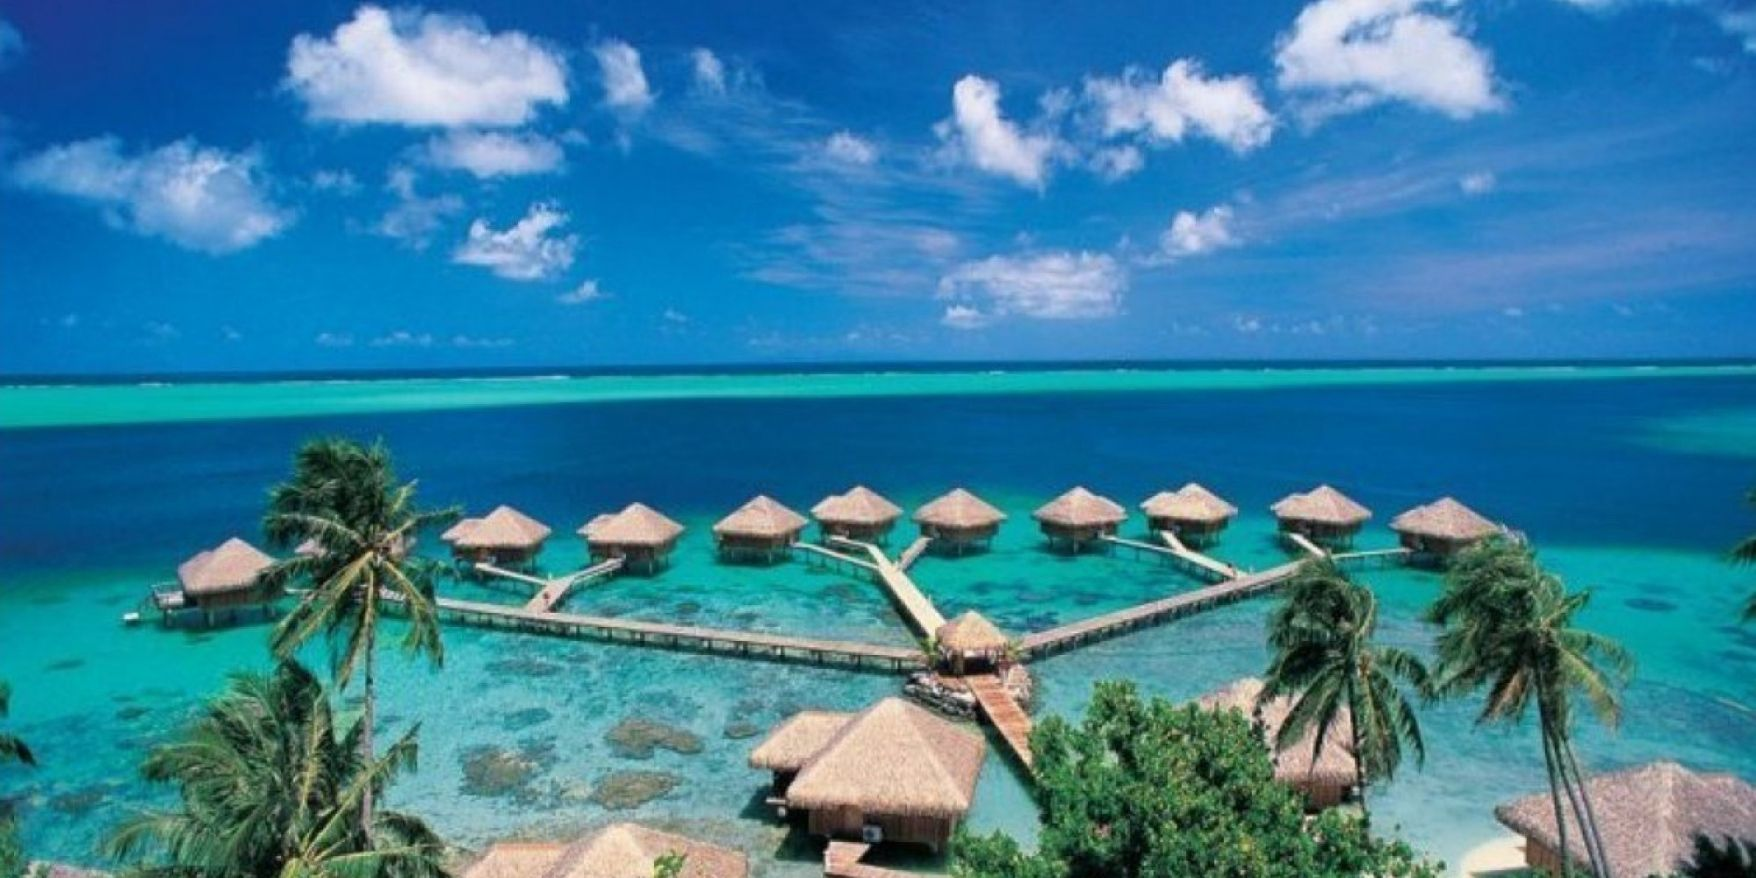 Beautiful Hawaii Overwater Bungalow Rentals Check More At  Http://www.jnnsysy.